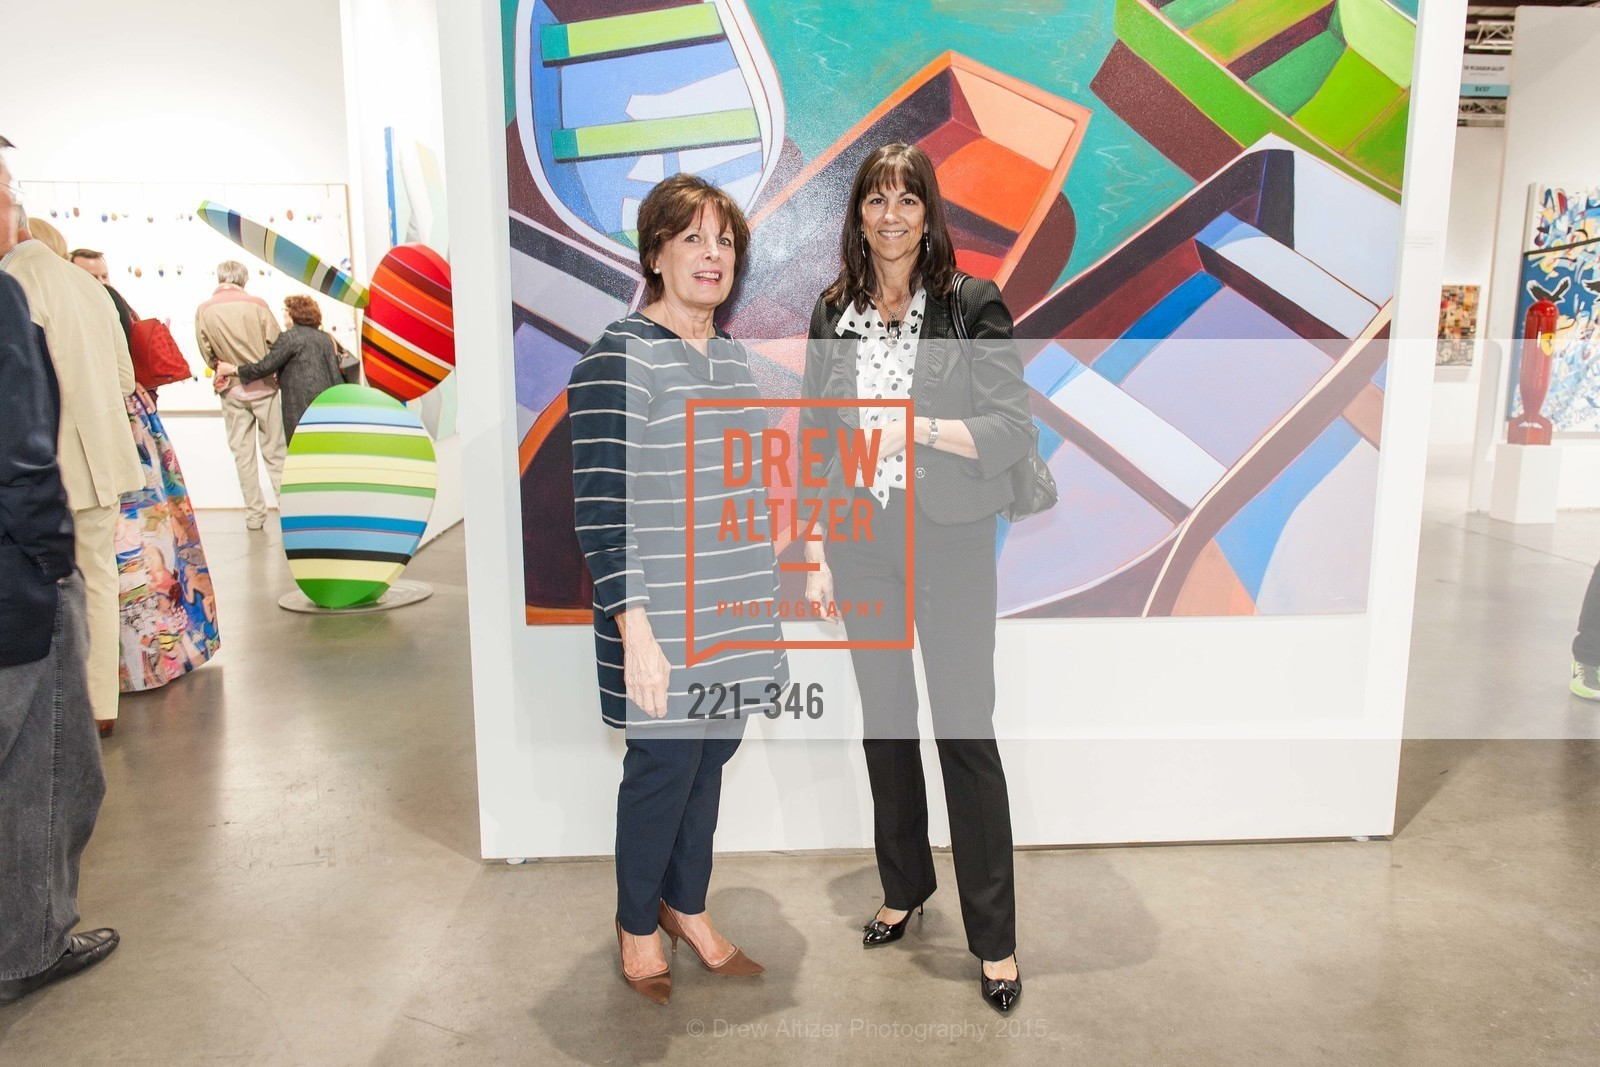 Rebecca Graffitna, Debbie Livingston, Art Miami Presents: Art Silicon Valley, San Mateo County Event Center. 1346 Saratoga Dr, October 8th, 2015,Drew Altizer, Drew Altizer Photography, full-service agency, private events, San Francisco photographer, photographer california